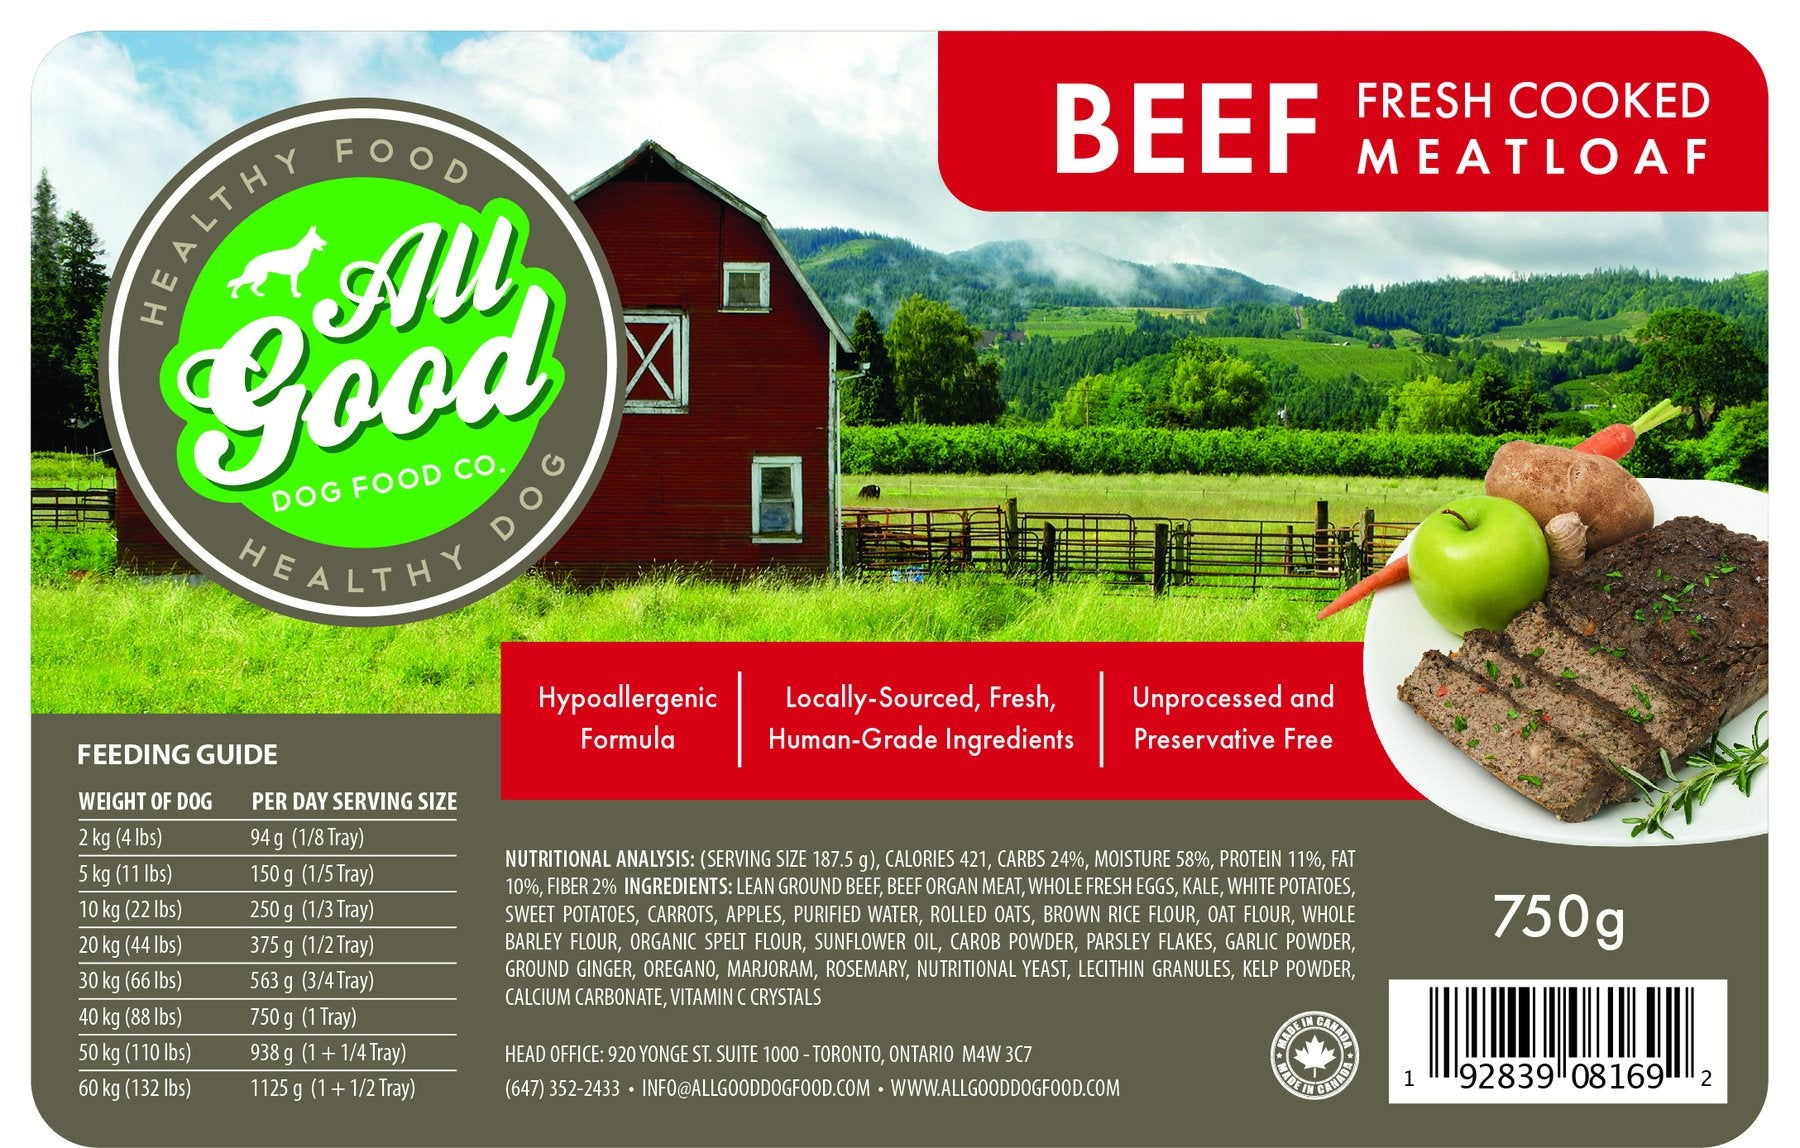 All Good Dog Food - Beef (750g)